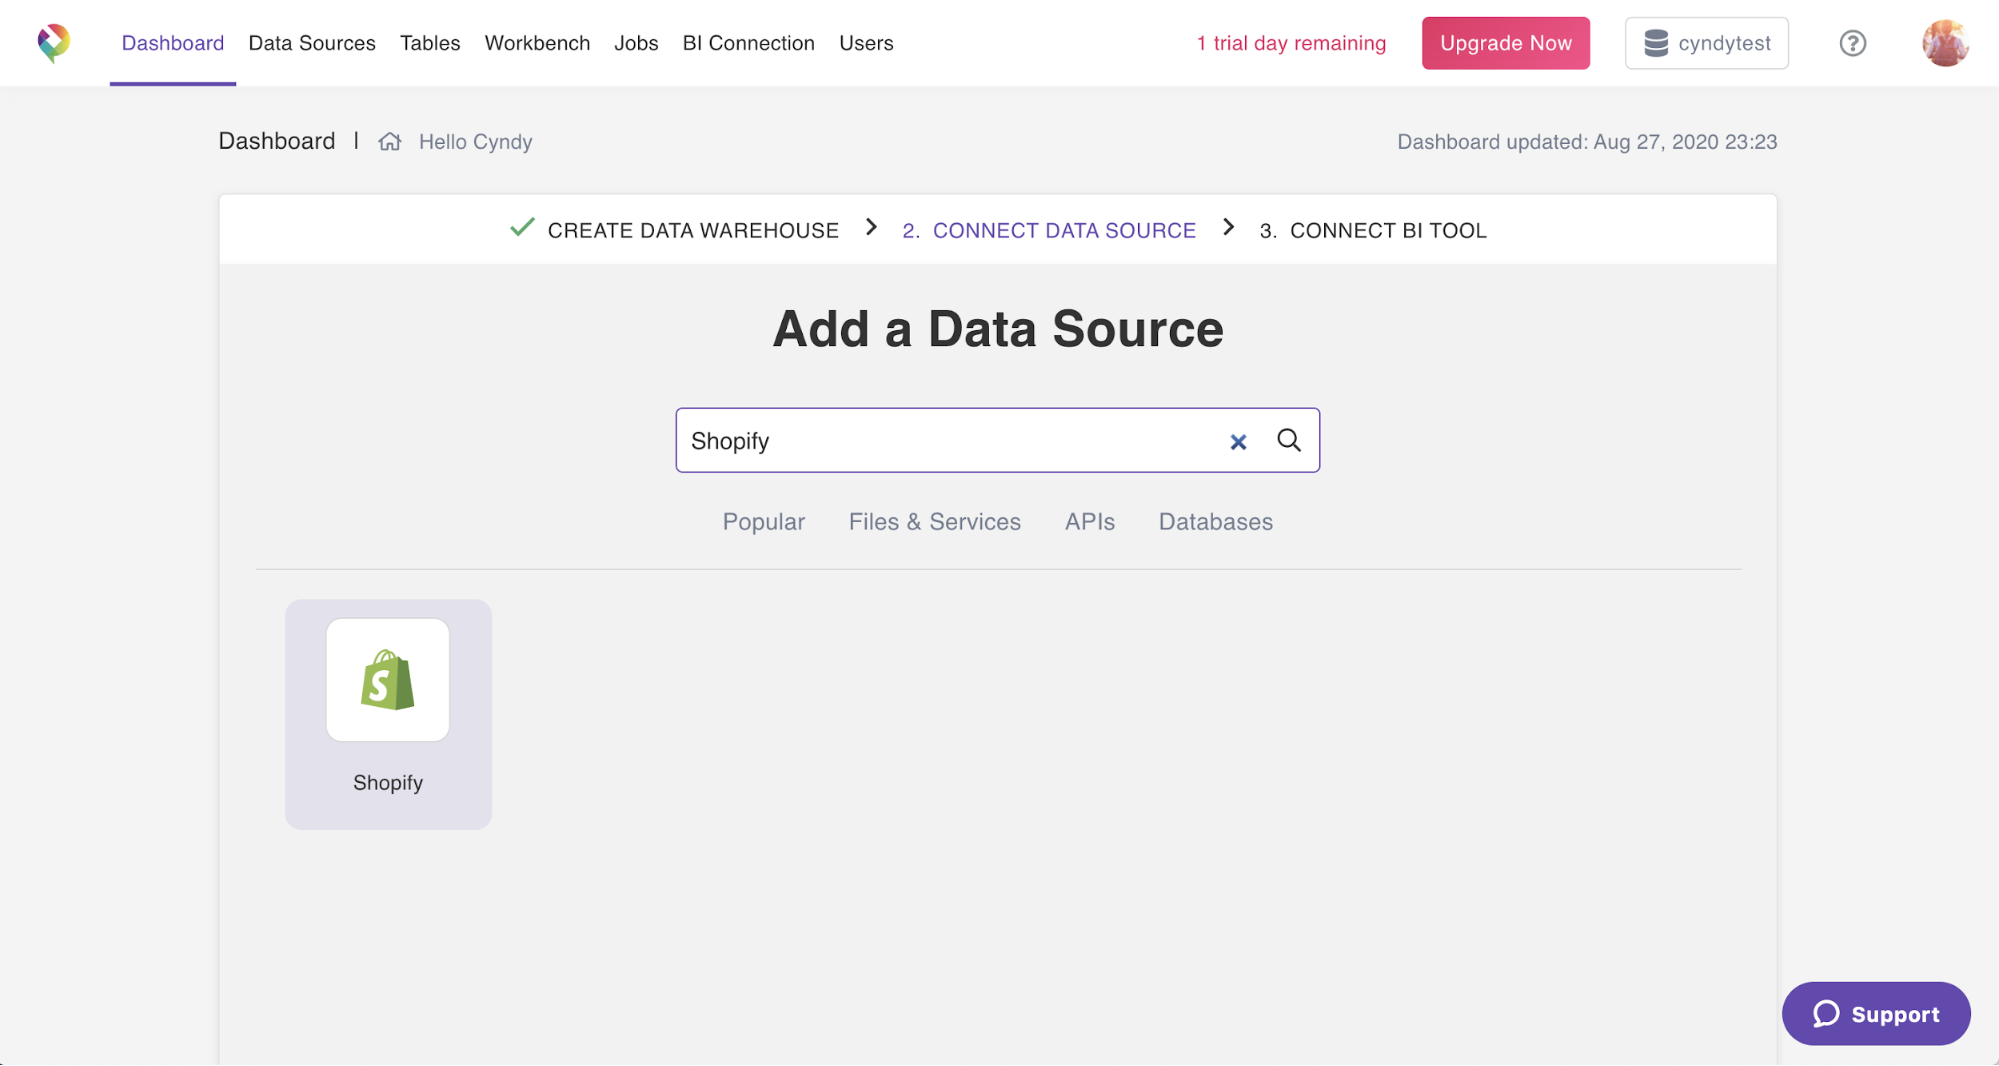 A screenshot of an easy-to-use UI for connecting Shopify data to a data warehouse.